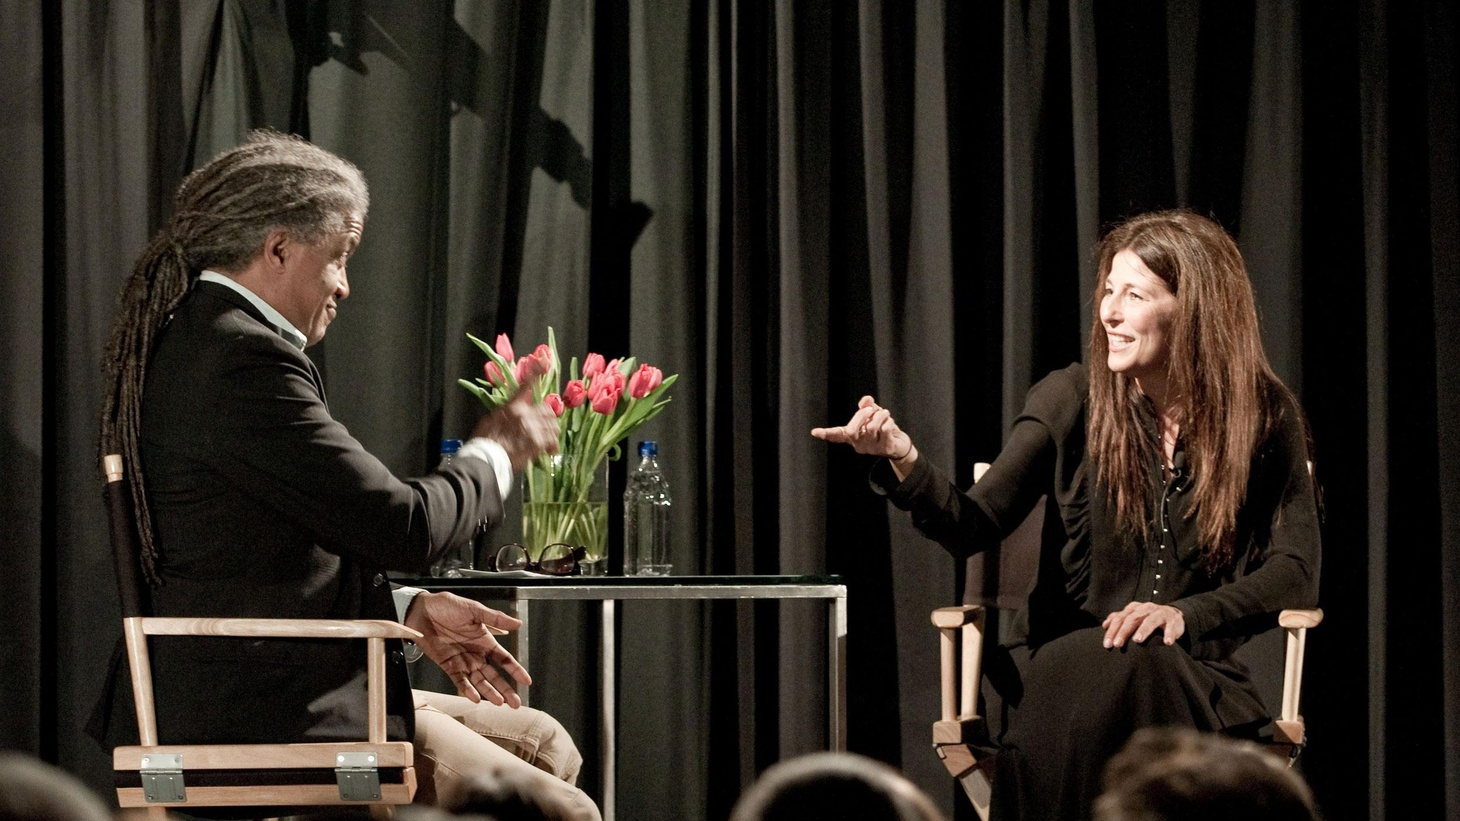 """KCRW and public radio network NPR have launched an exclusive online collaboration, UpClose. In the first of many conversations with some of the leading figures in popular culture, Elvis Mitchell and indie-favorite actress Catherine Keener engaged in an open-ended and unscripted conversation about her career. Mitchell notes that he's a big fan of Keener's """"insinuating and expressive laugh."""""""